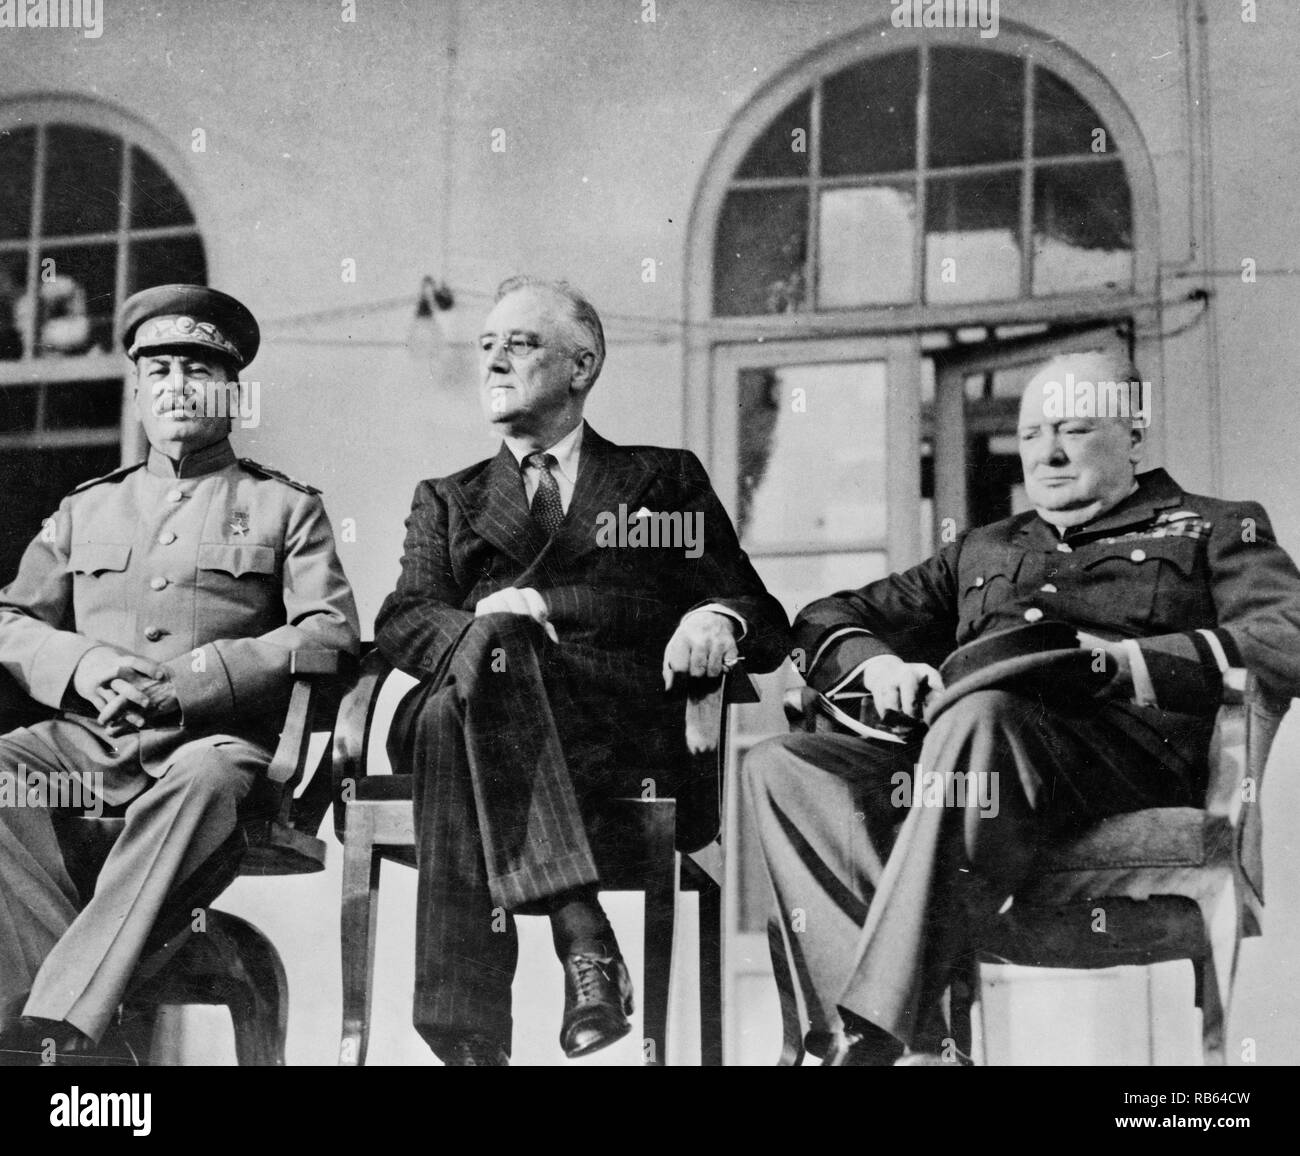 Photograph of American President Franklin Roosevelt, Russian Dictator Joseph Stalin, and British Prime Minister Winston Churchill during a conference in November. Dated 1943 - Stock Image